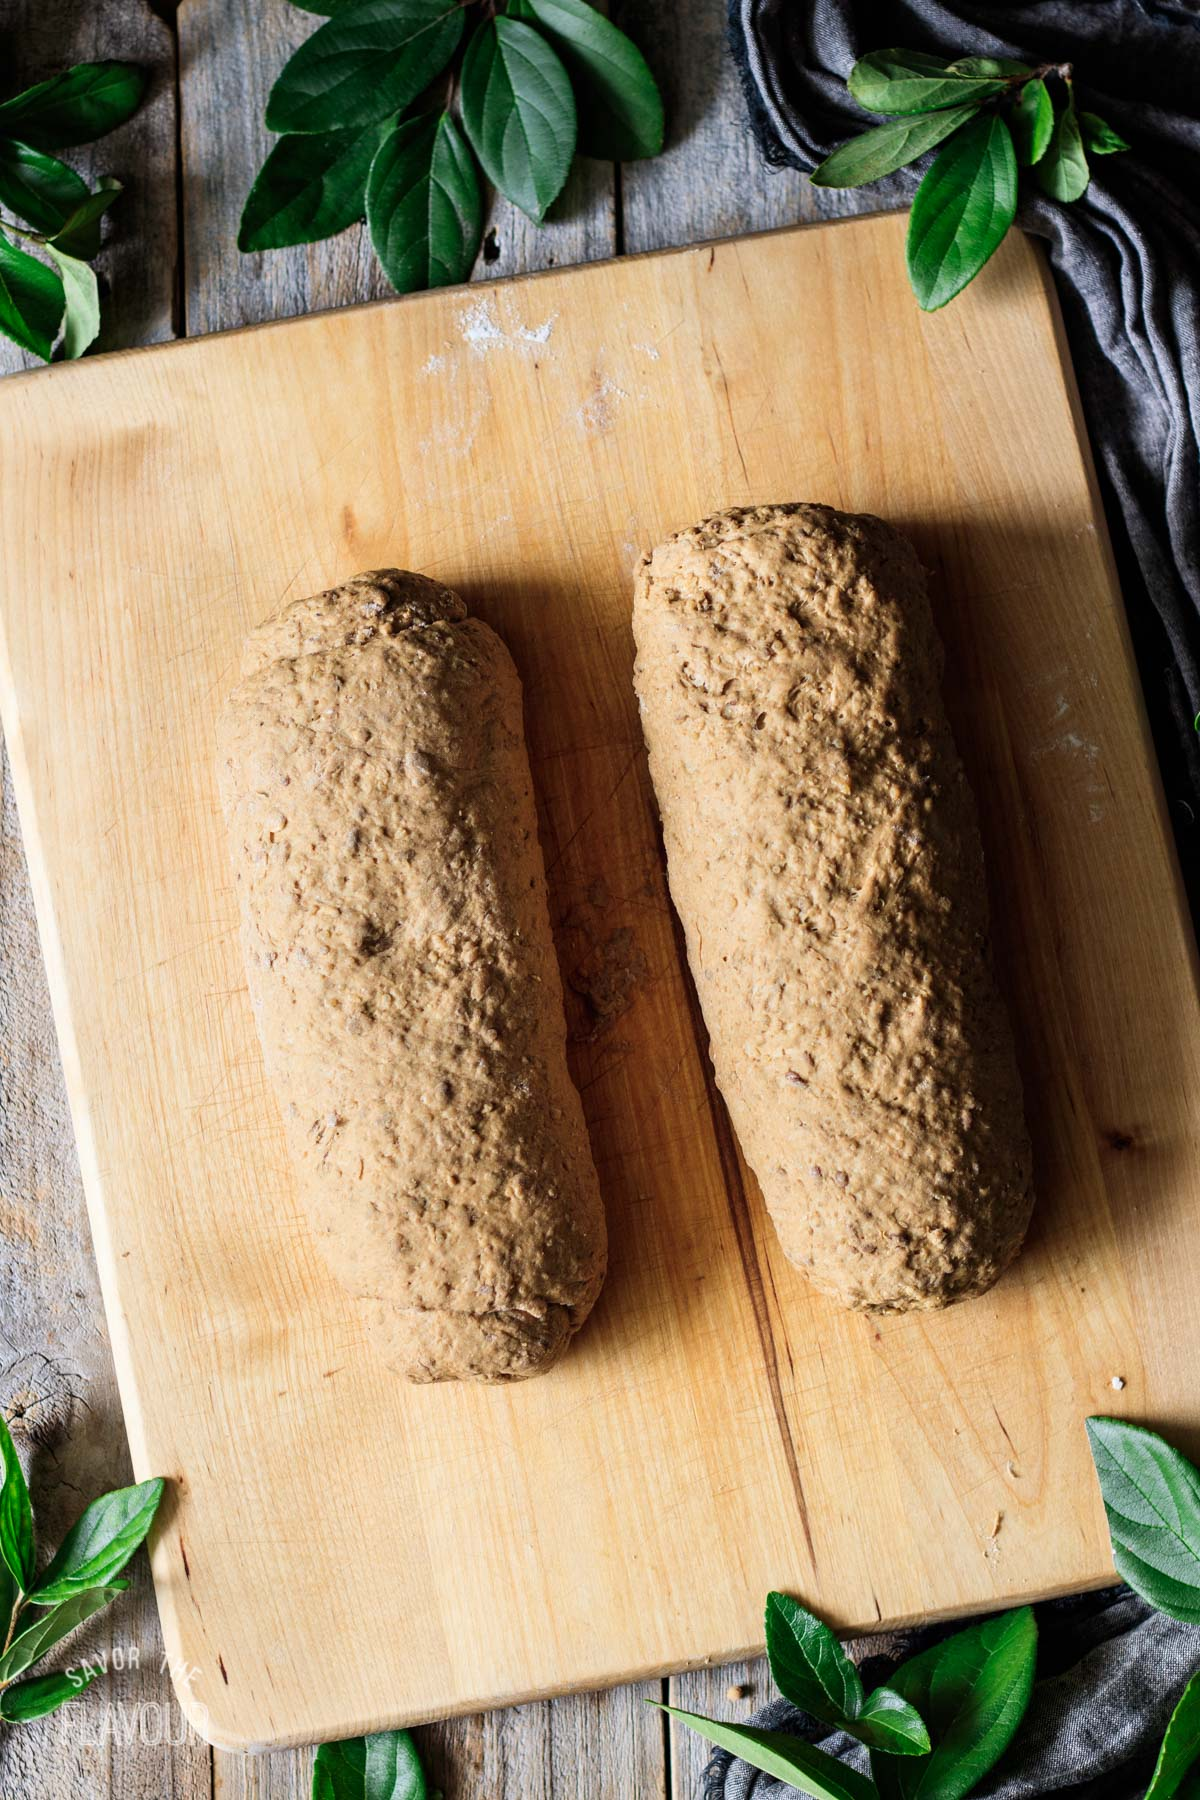 two logs of bread dough on a wooden cutting board